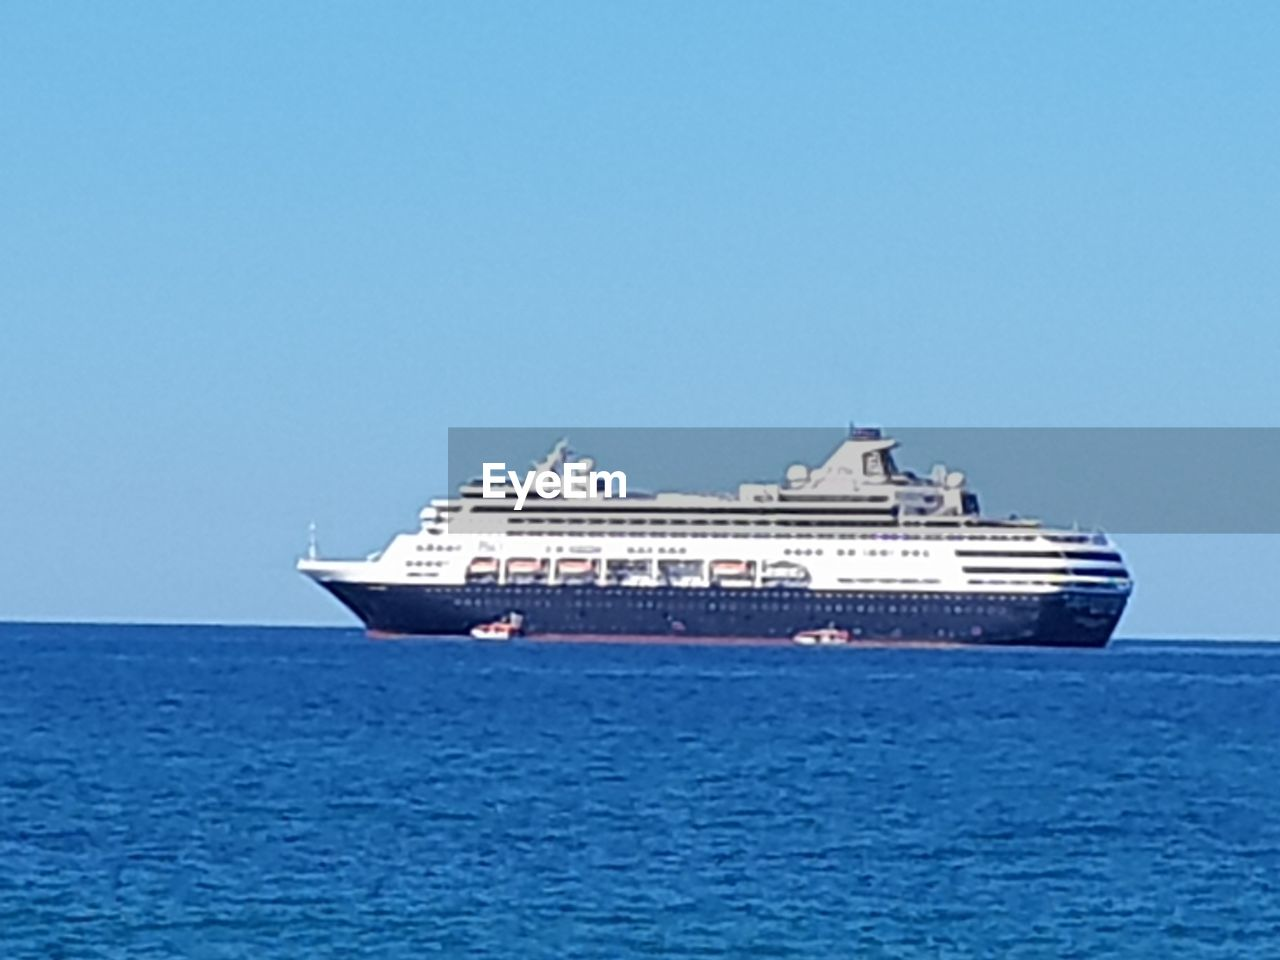 nautical vessel, sea, transportation, water, mode of transportation, sky, ship, blue, copy space, clear sky, cruise, no people, cruise ship, nature, travel, day, craft, sailing, waterfront, horizon over water, passenger craft, luxury, yacht